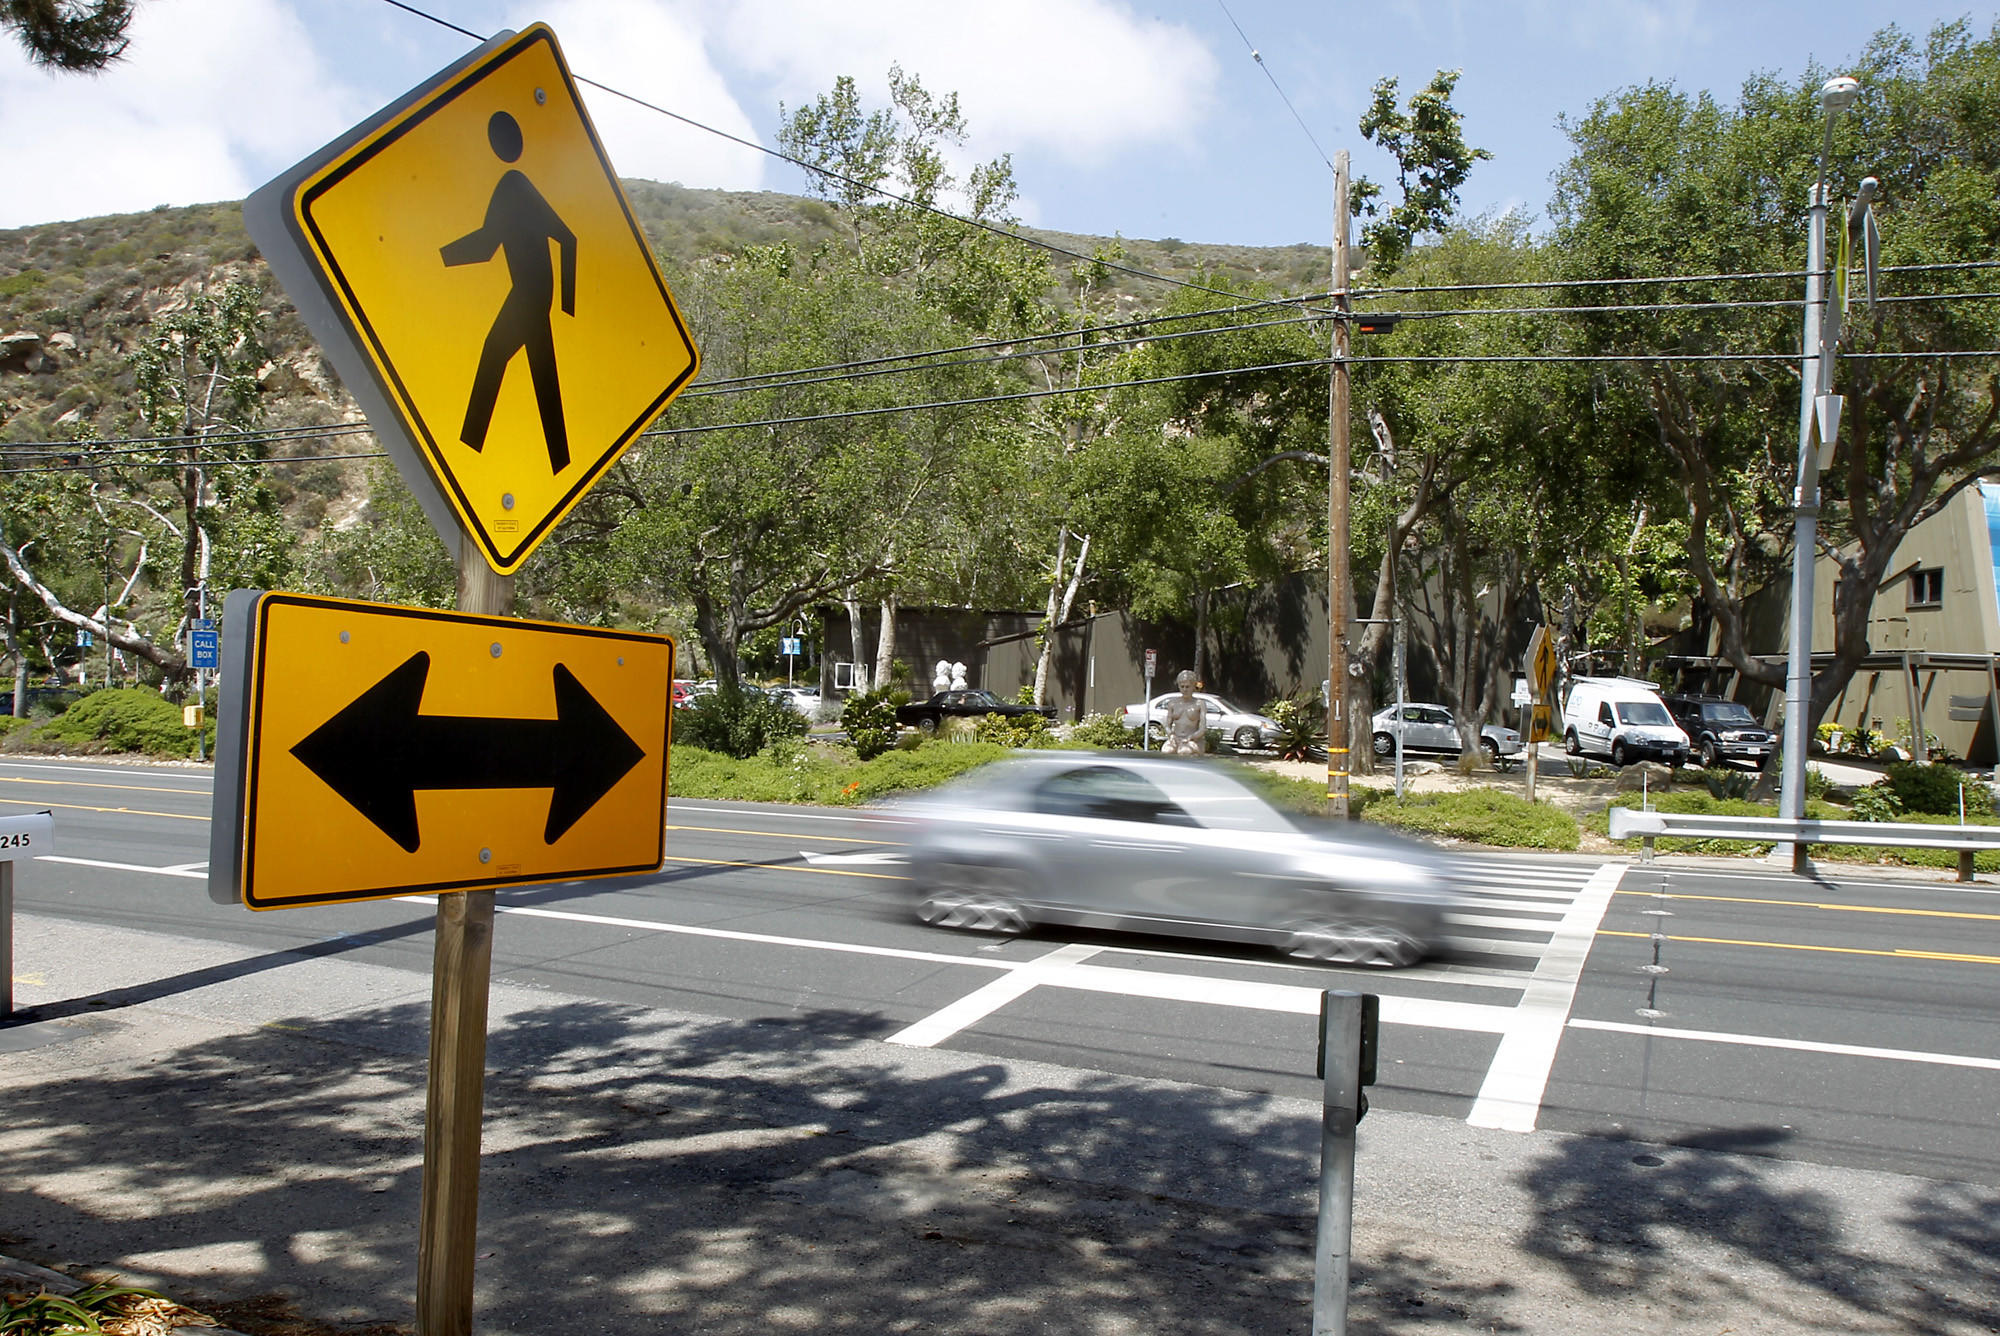 The flashing crosswalk in front of Laguna College of Art   Design on Laguna Canyon Road.